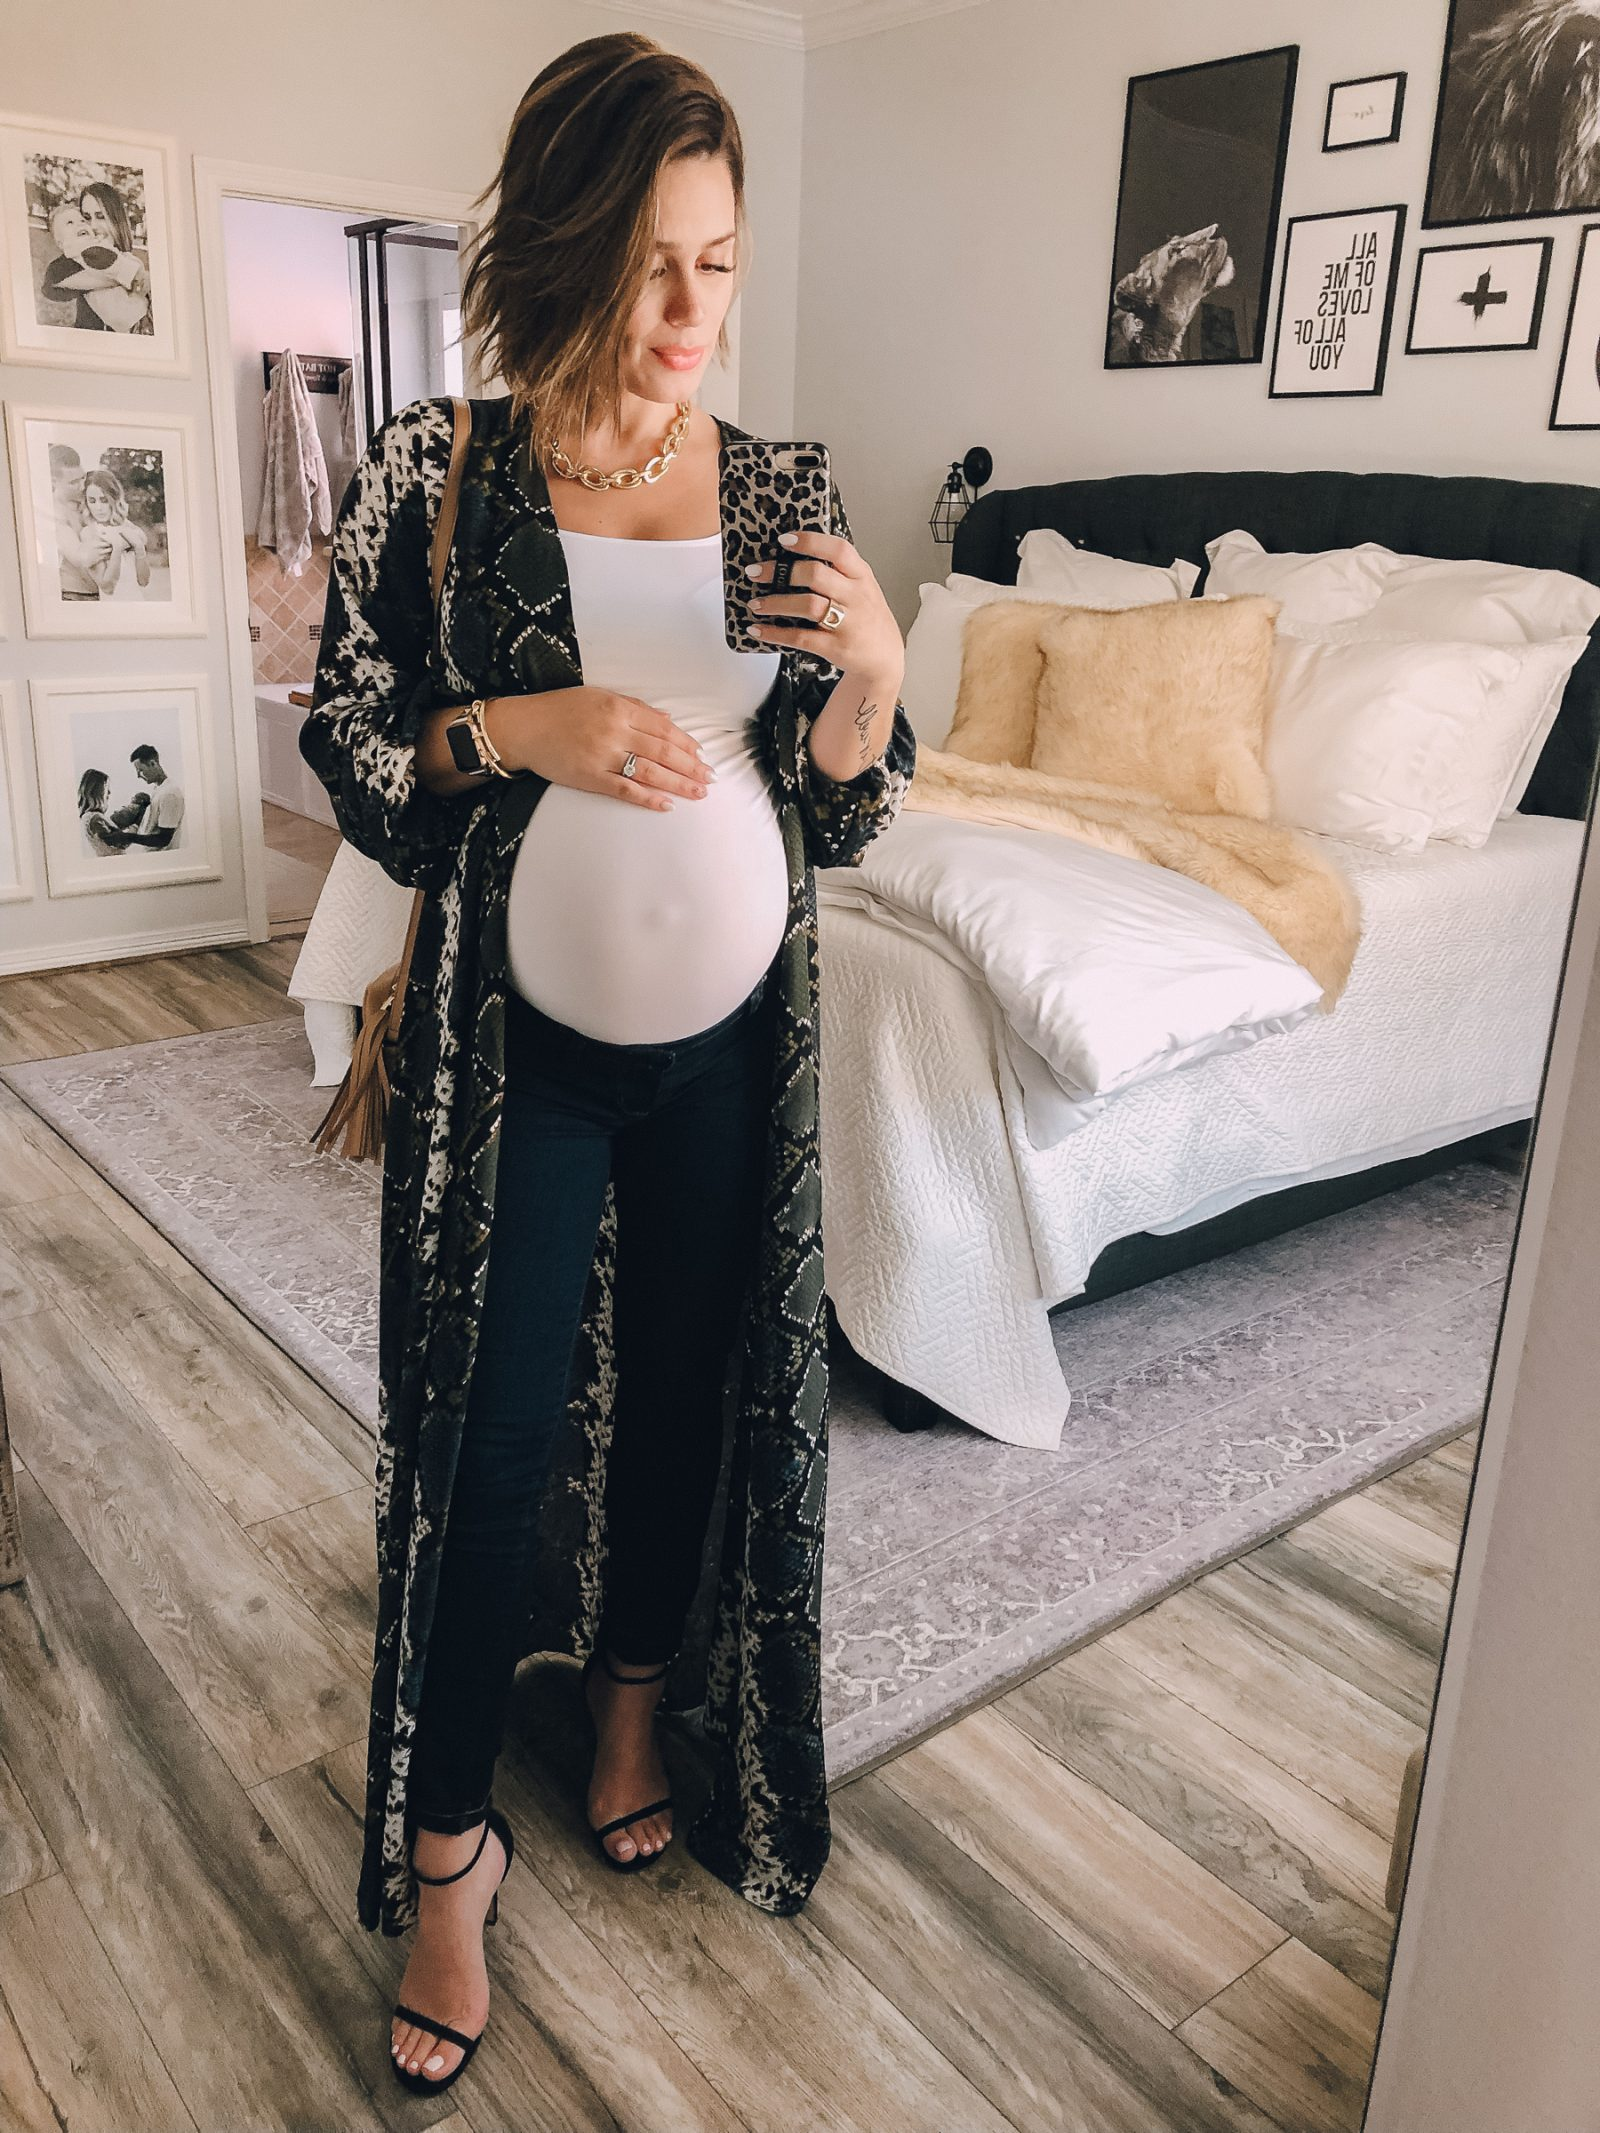 Fashion blogger Elly Brown wears a snake print duster from Buddy Love with skinny jeans and heels for a date night look